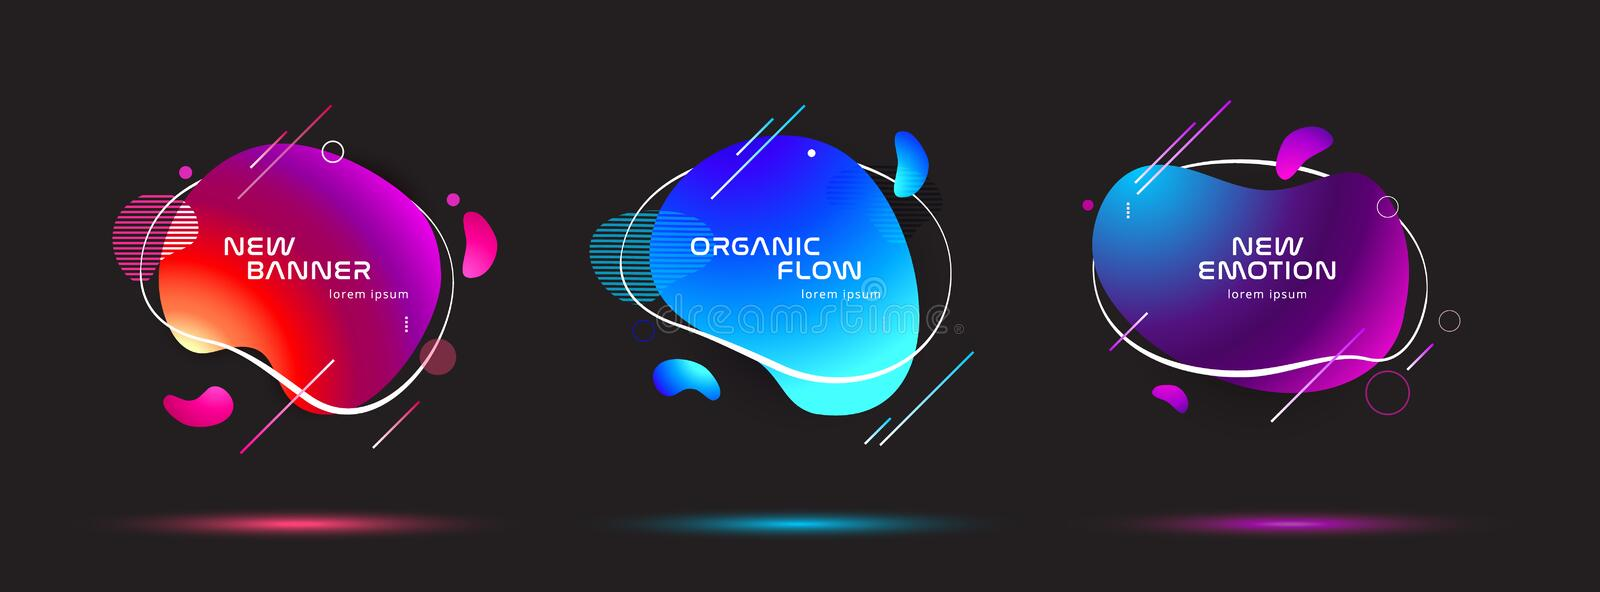 Set of liquid color abstract geometric shapes. Fluid gradient elements for minimal banner, logo, social post. Futuristic royalty free illustration